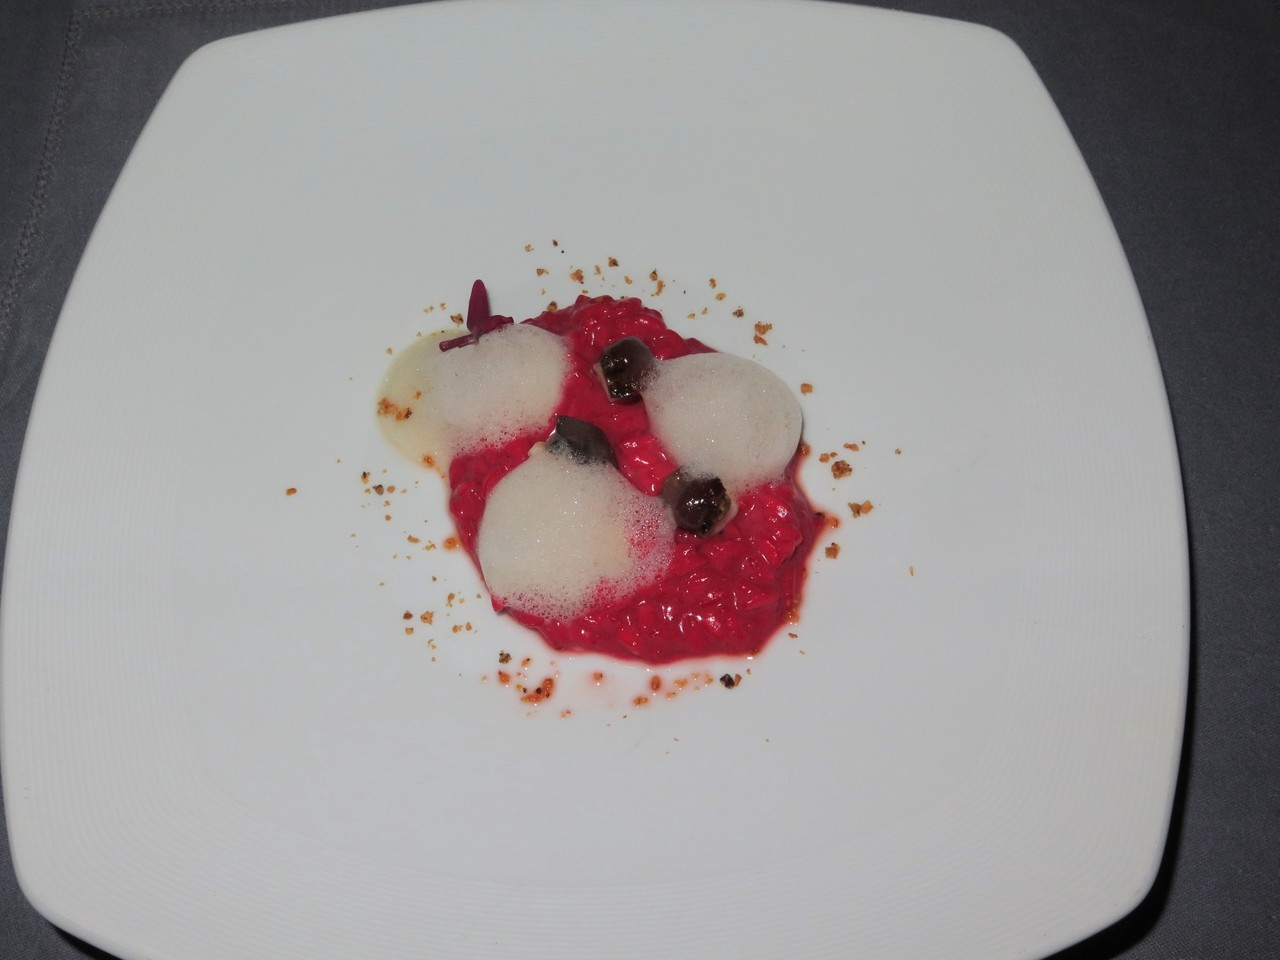 Brewer's yeast and Beet Risotto, sweet Gorgonzola and stewed Eel